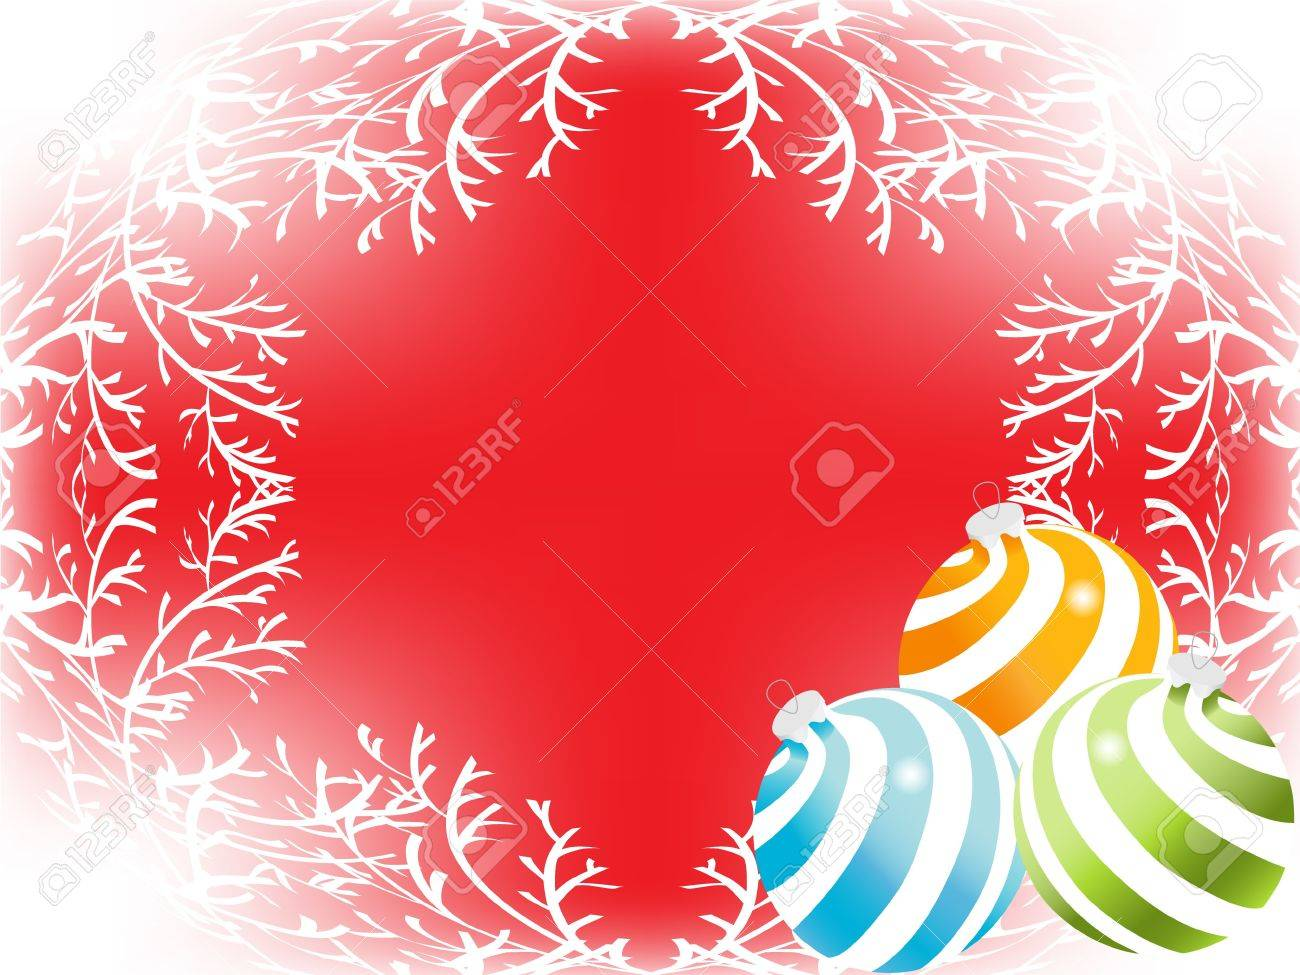 christmas sphere backgrounds. vector Stock Photo - 3809177